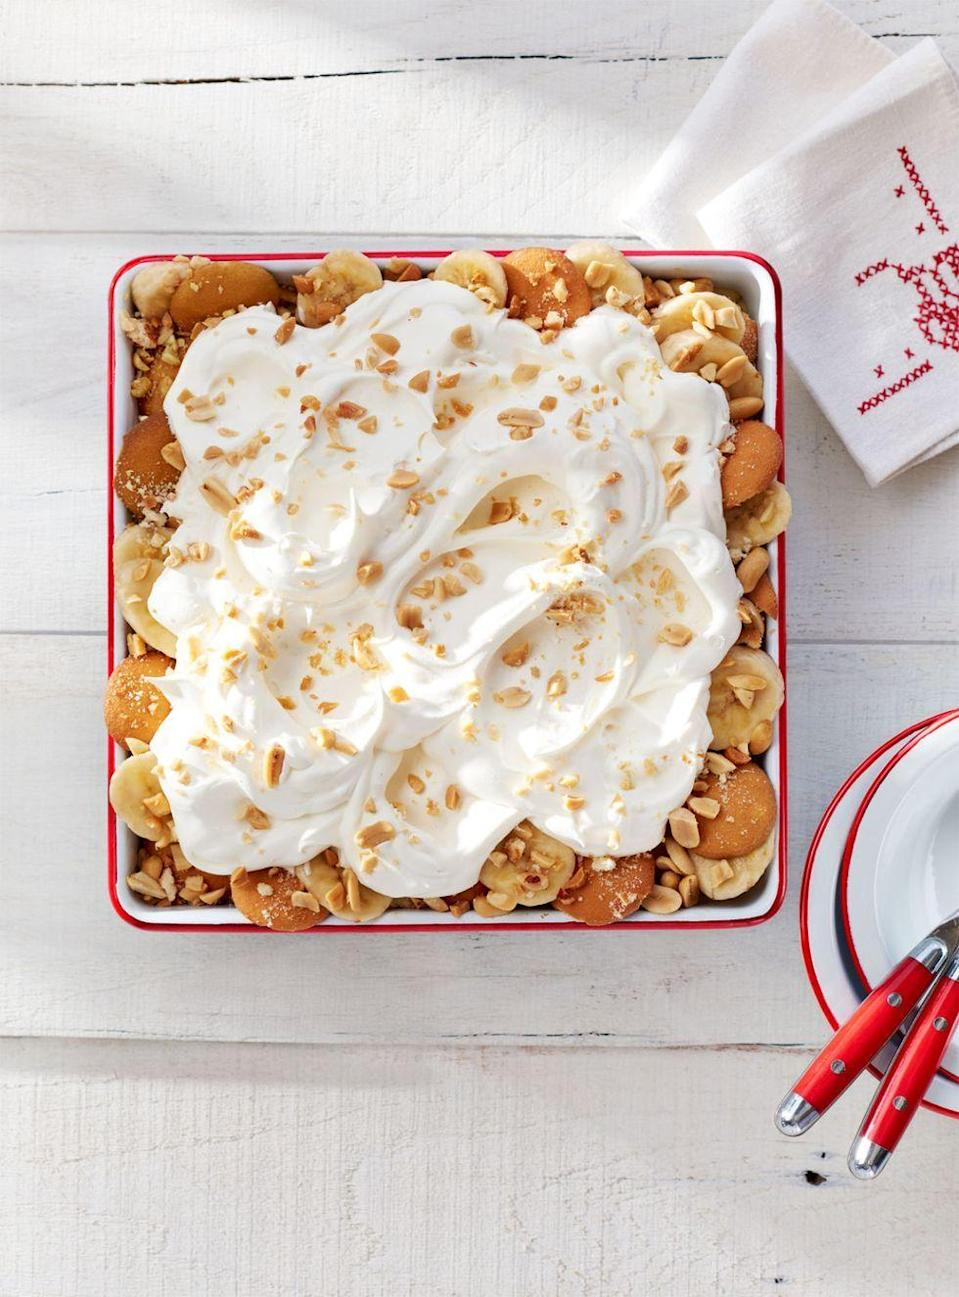 """<p>An all-American classic, this banana pudding benefits from the addition of just a hint of salt.</p><p><strong><a href=""""https://www.countryliving.com/food-drinks/recipes/a35607/salty-peanut-banana-pudding/"""" rel=""""nofollow noopener"""" target=""""_blank"""" data-ylk=""""slk:Get the recipe"""" class=""""link rapid-noclick-resp"""">Get the recipe</a>. </strong></p>"""